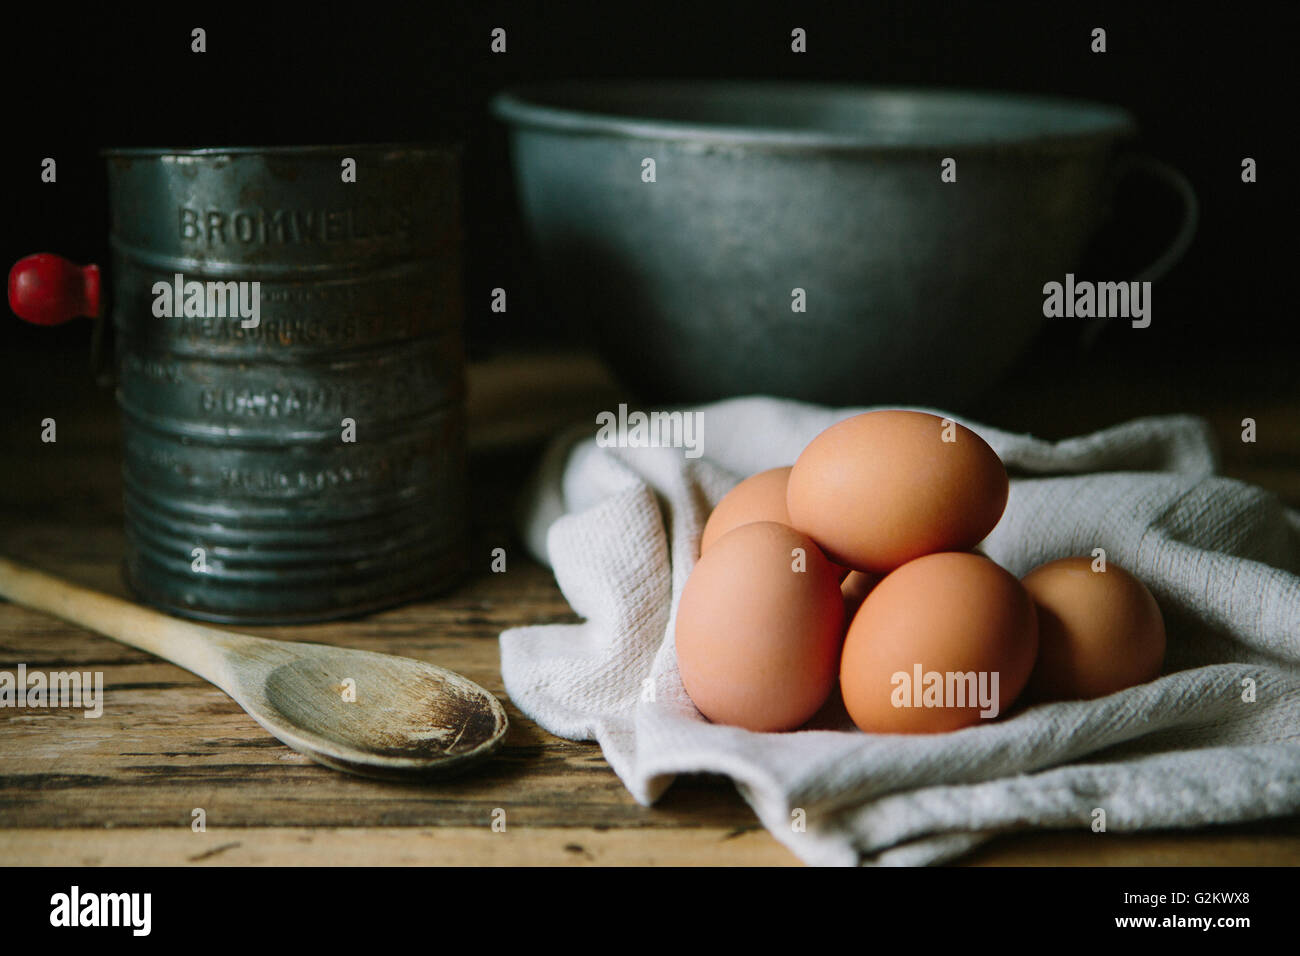 Brown Eggs with Wood Spoon, Sifter and Mixing Bowl - Stock Image